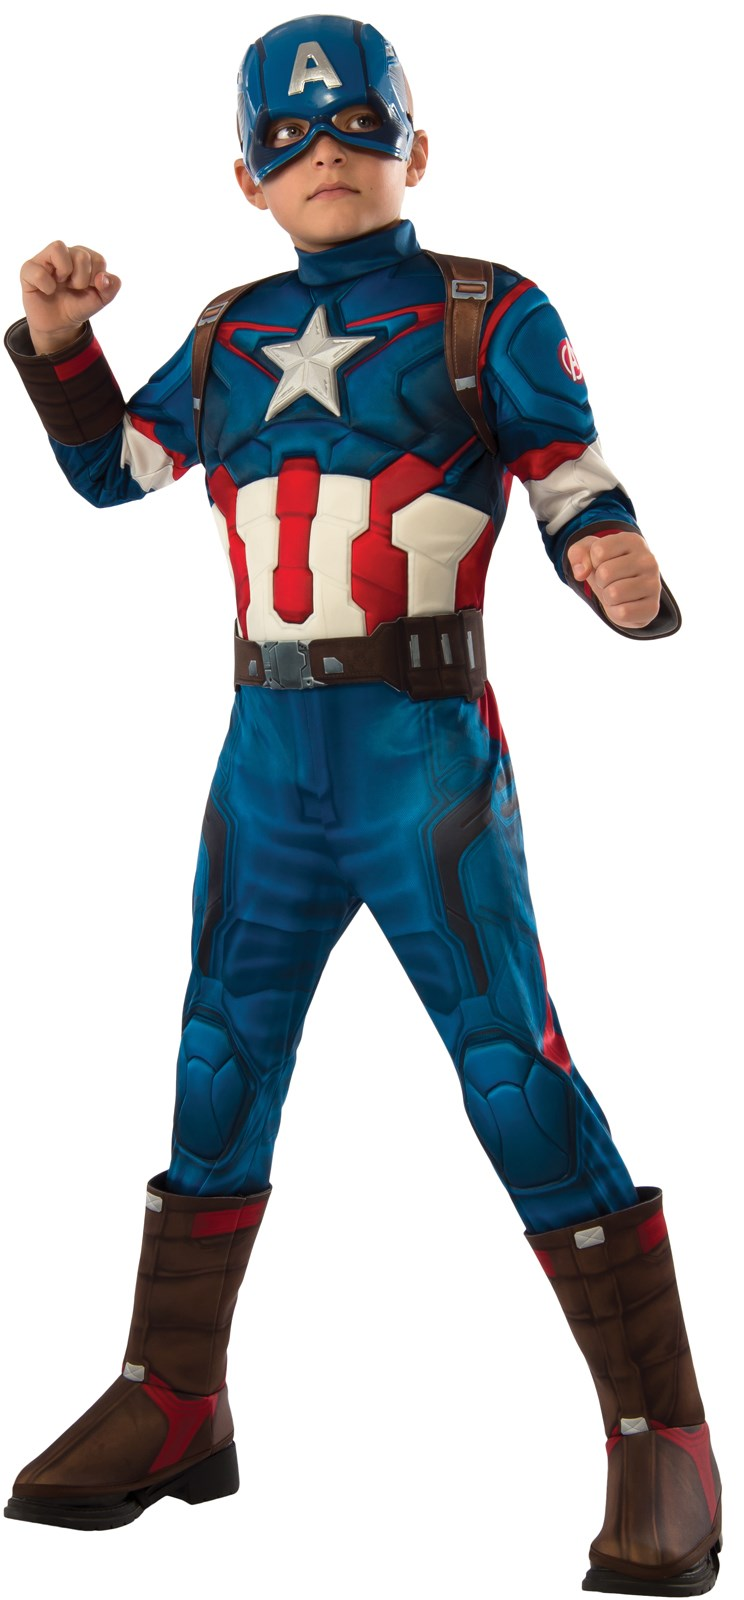 Avengers 2 - Age of Ultron: Deluxe Captain America Costume For Kids